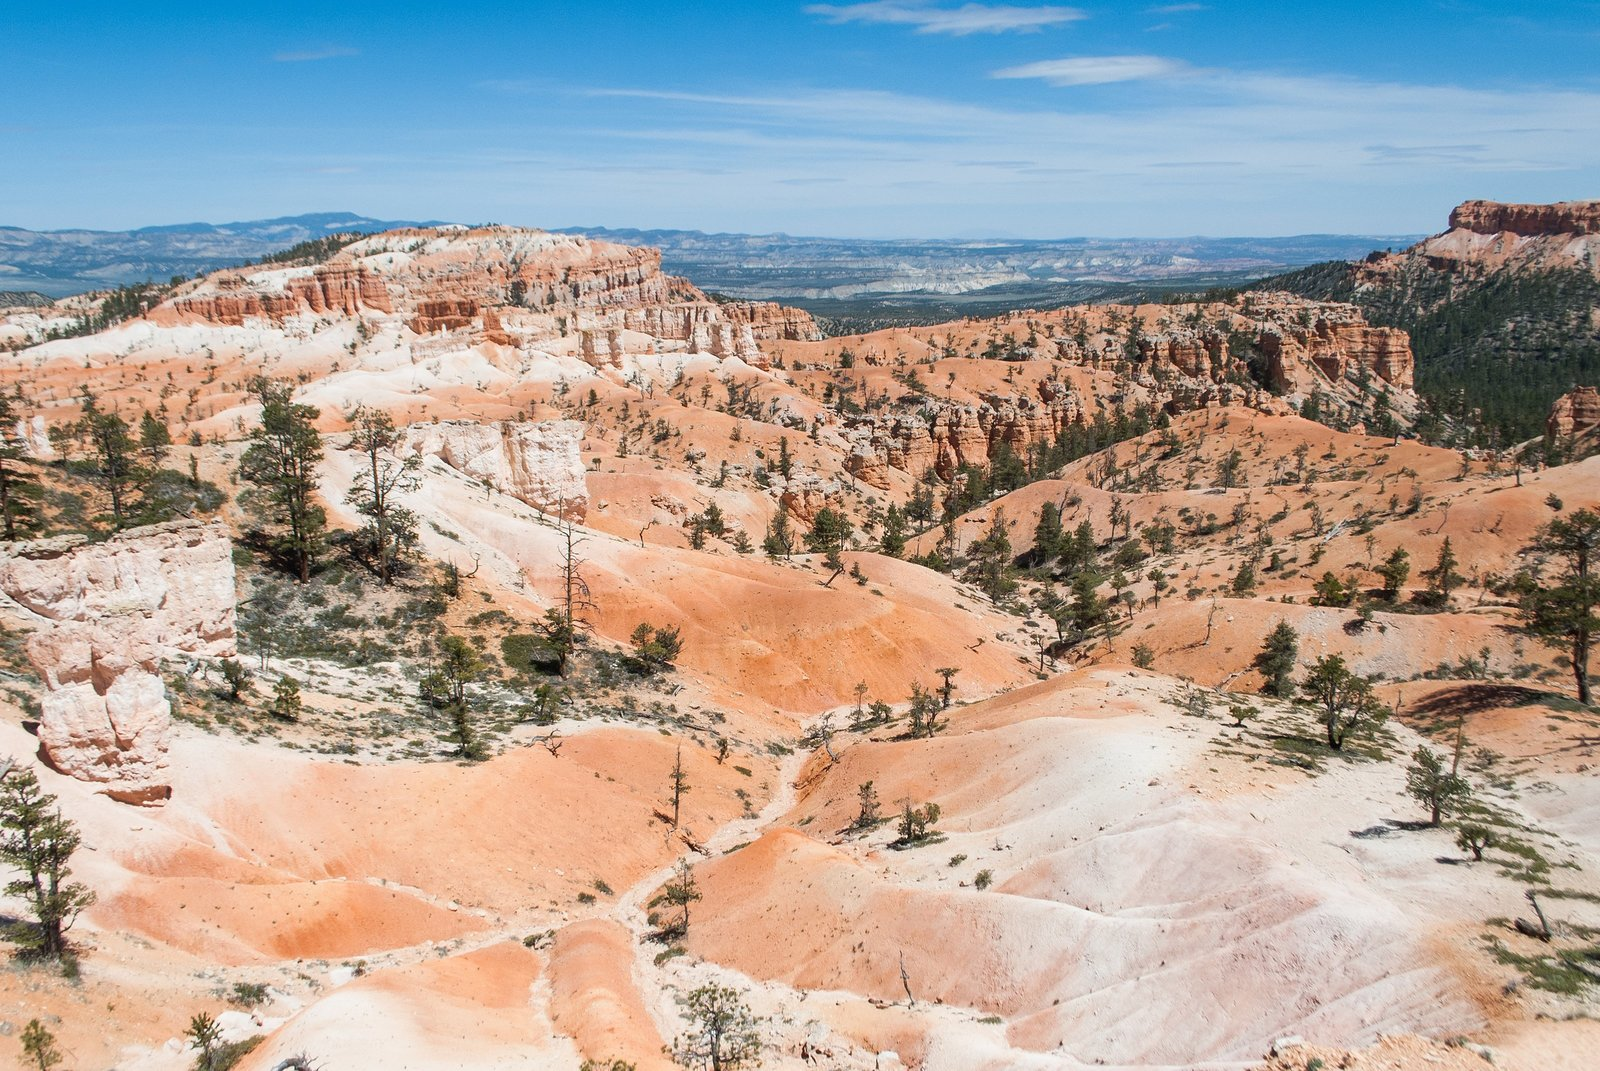 Landscape view of the red rocks of Bryce Canyon National Park in Utah